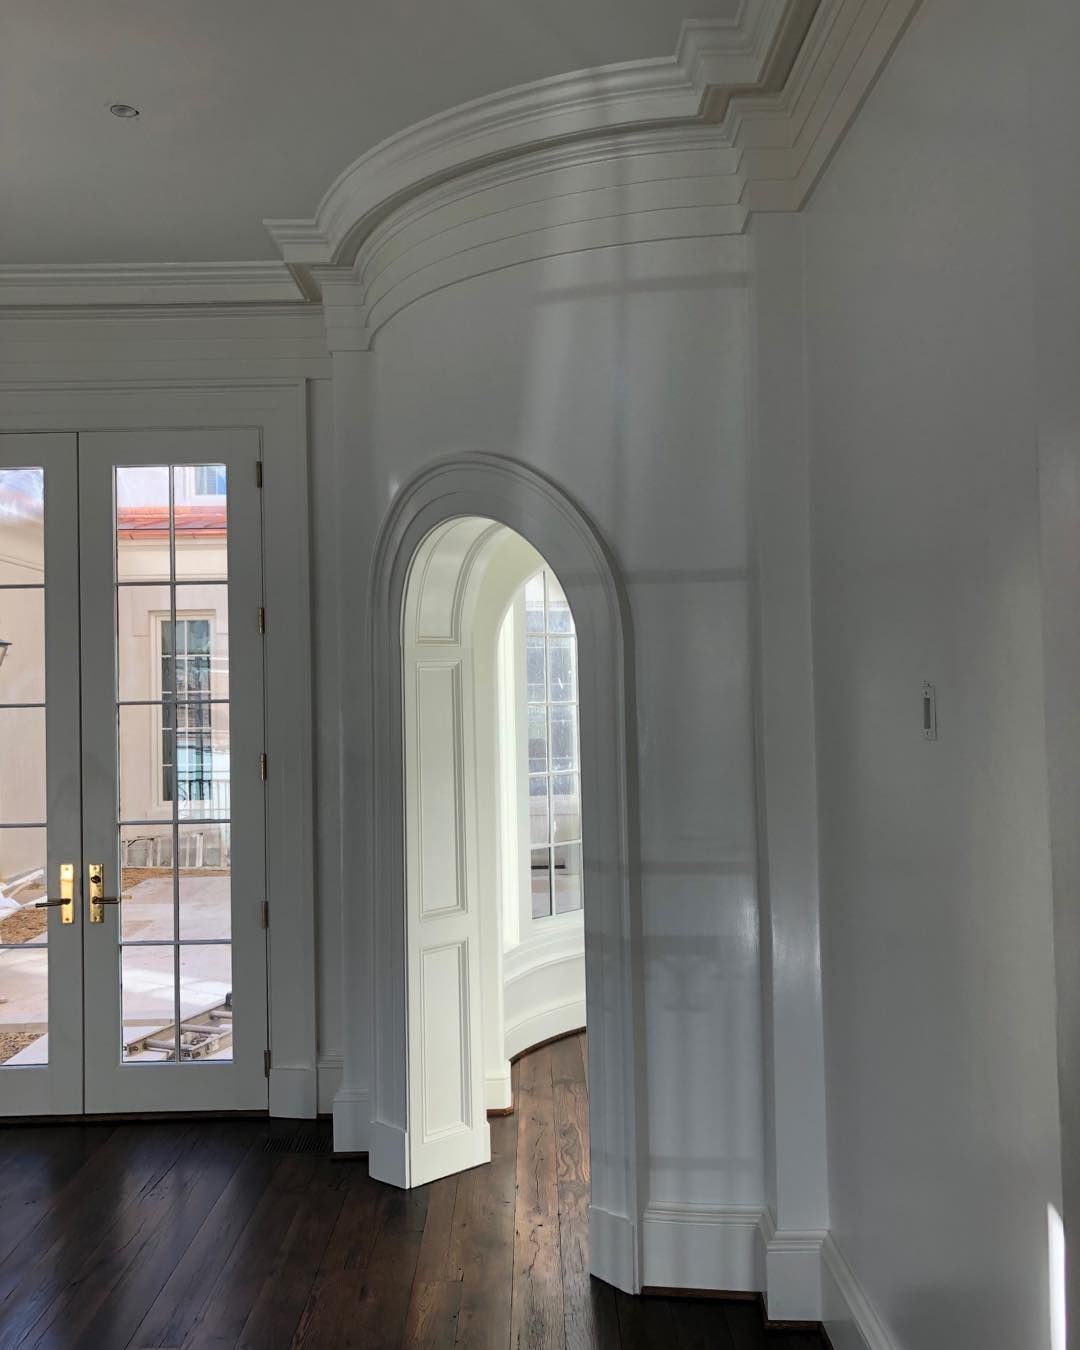 James Dunn On Instagram Making These Compound Curved Wall And Arch Top Cased Opening Were A Challenge But The End Result Was Perfect Curved Walls Design Wall